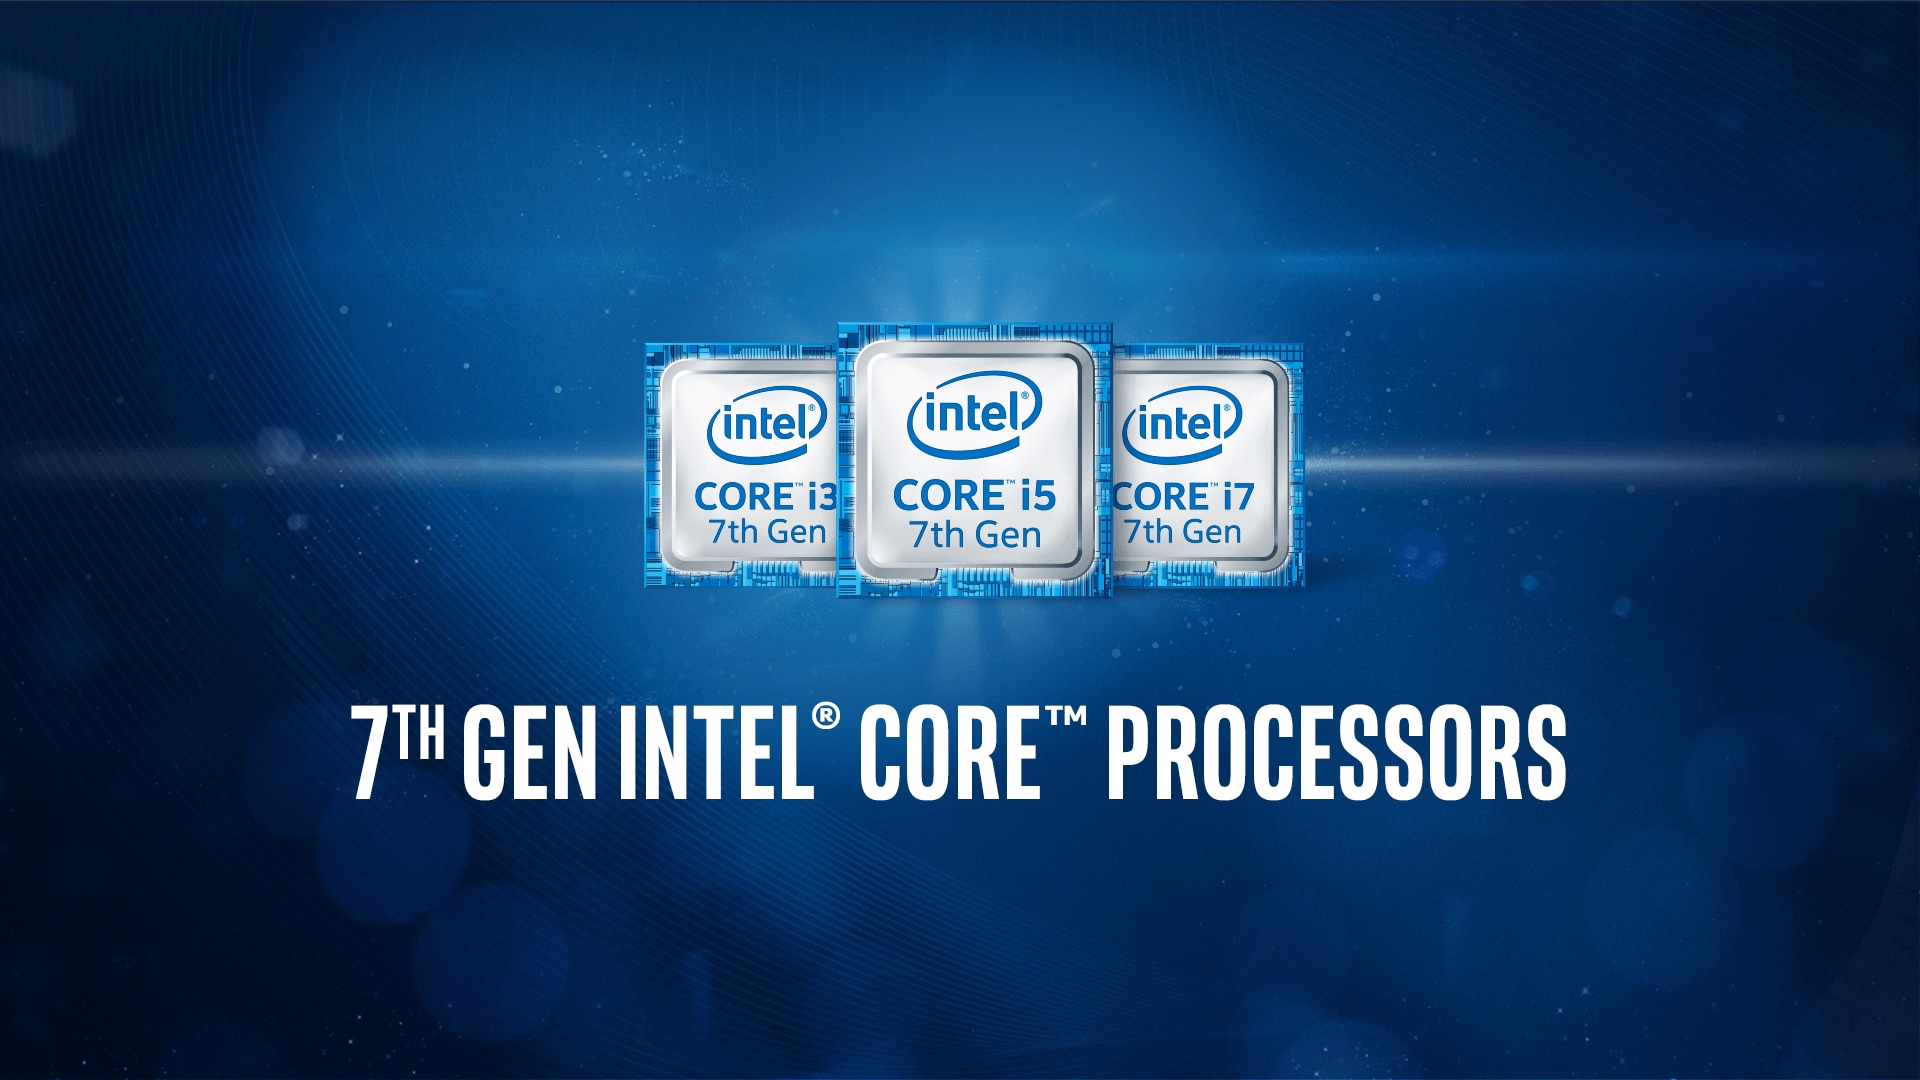 Intel Pentium G4560 Kaby Lake Cpu 35 Ghz Lga1151 2 35ghz Socket 1151 Kabylake Unprecedented Power And Responsiveness Paired With Easy Built In Security Means You Can Work Play Create As Quickly Seamlessly Your Heart